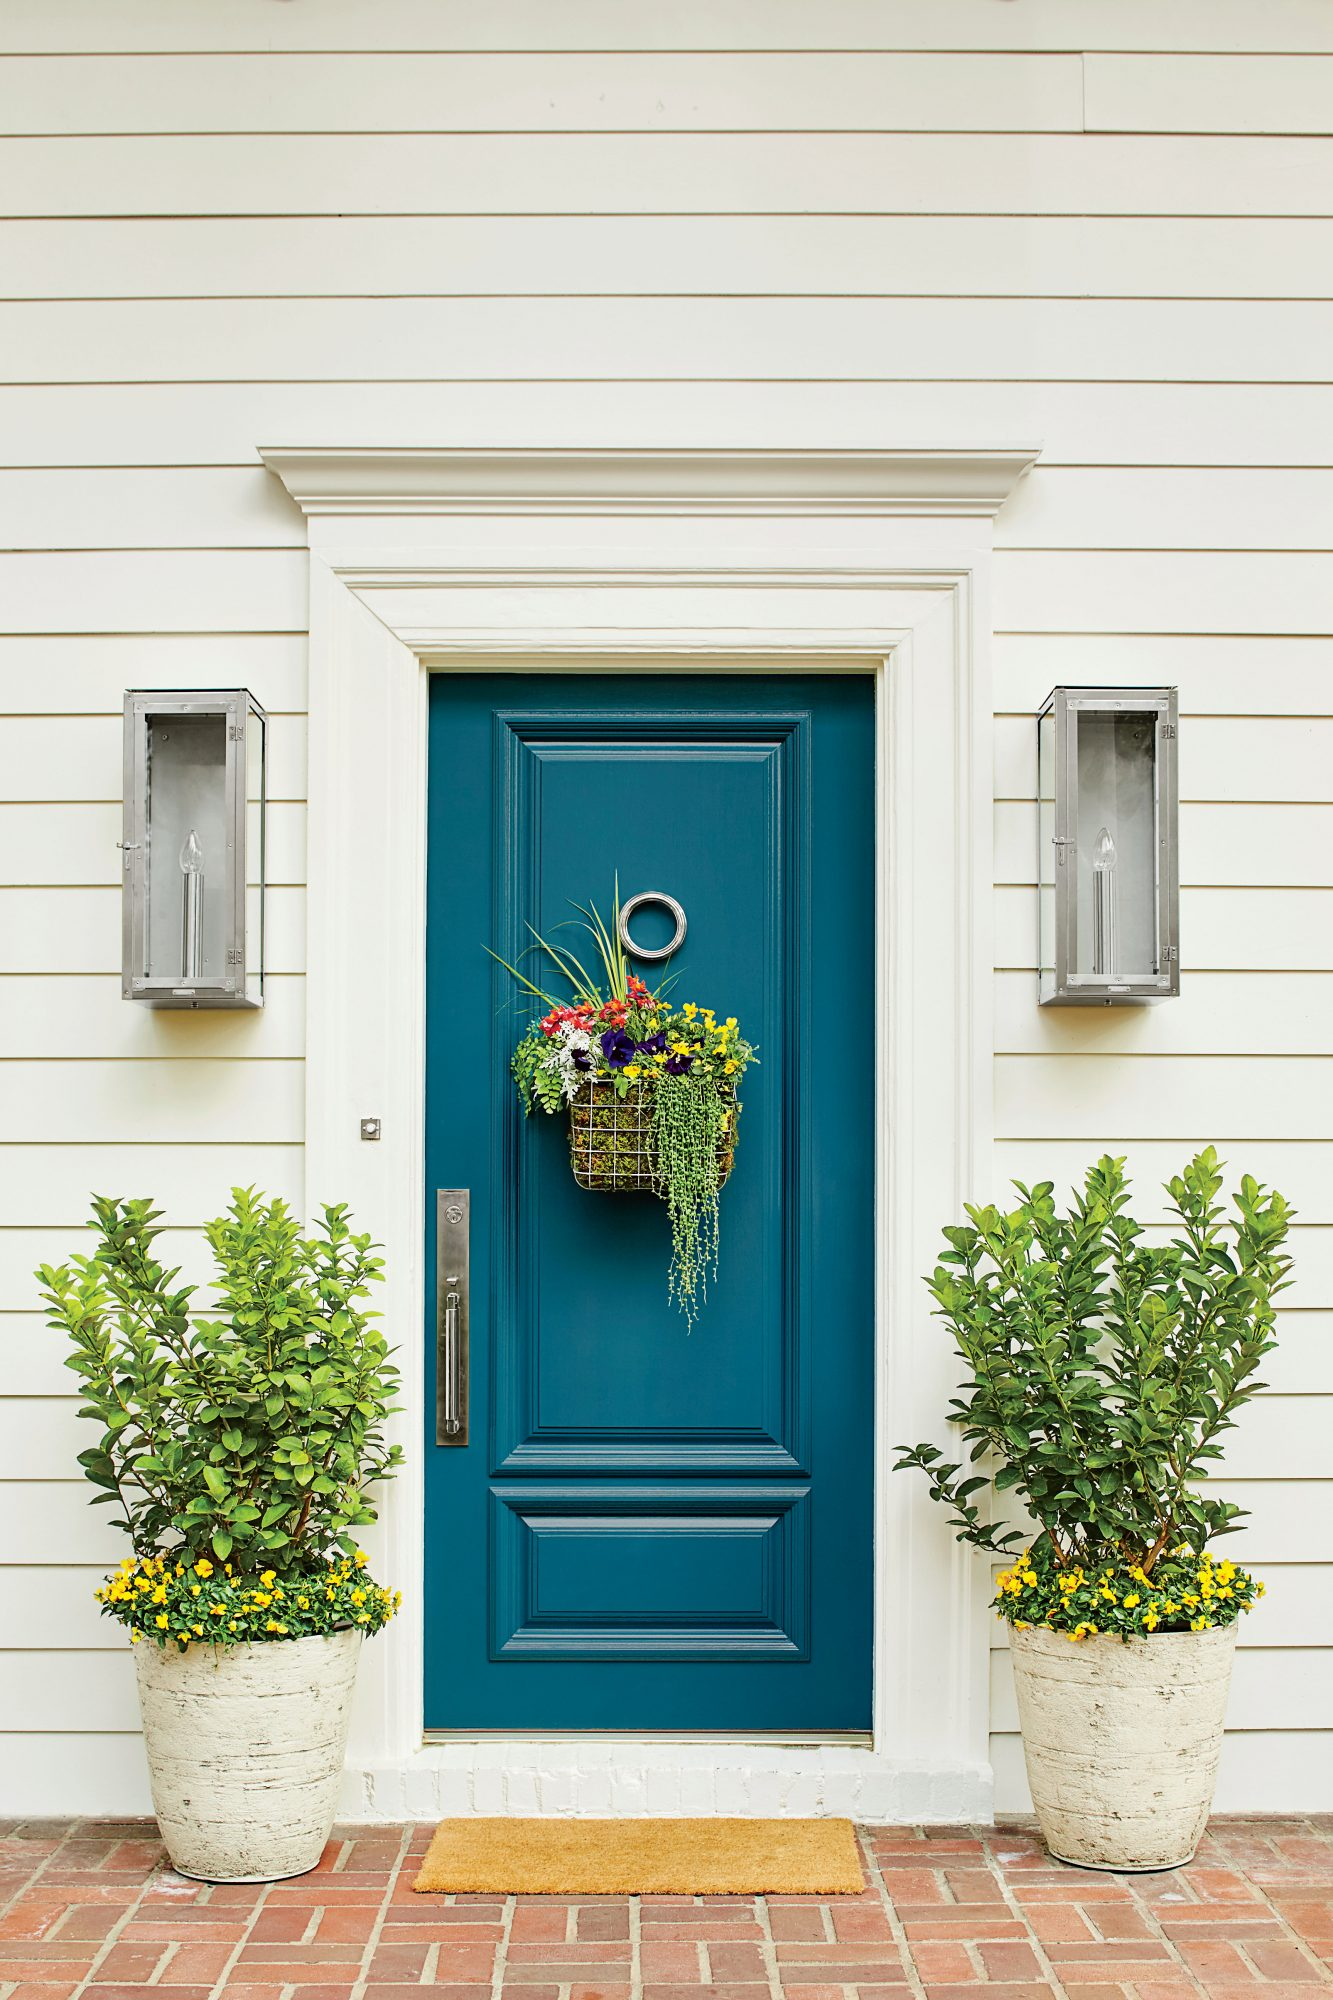 How To Make A Basket Wreath Southern Living